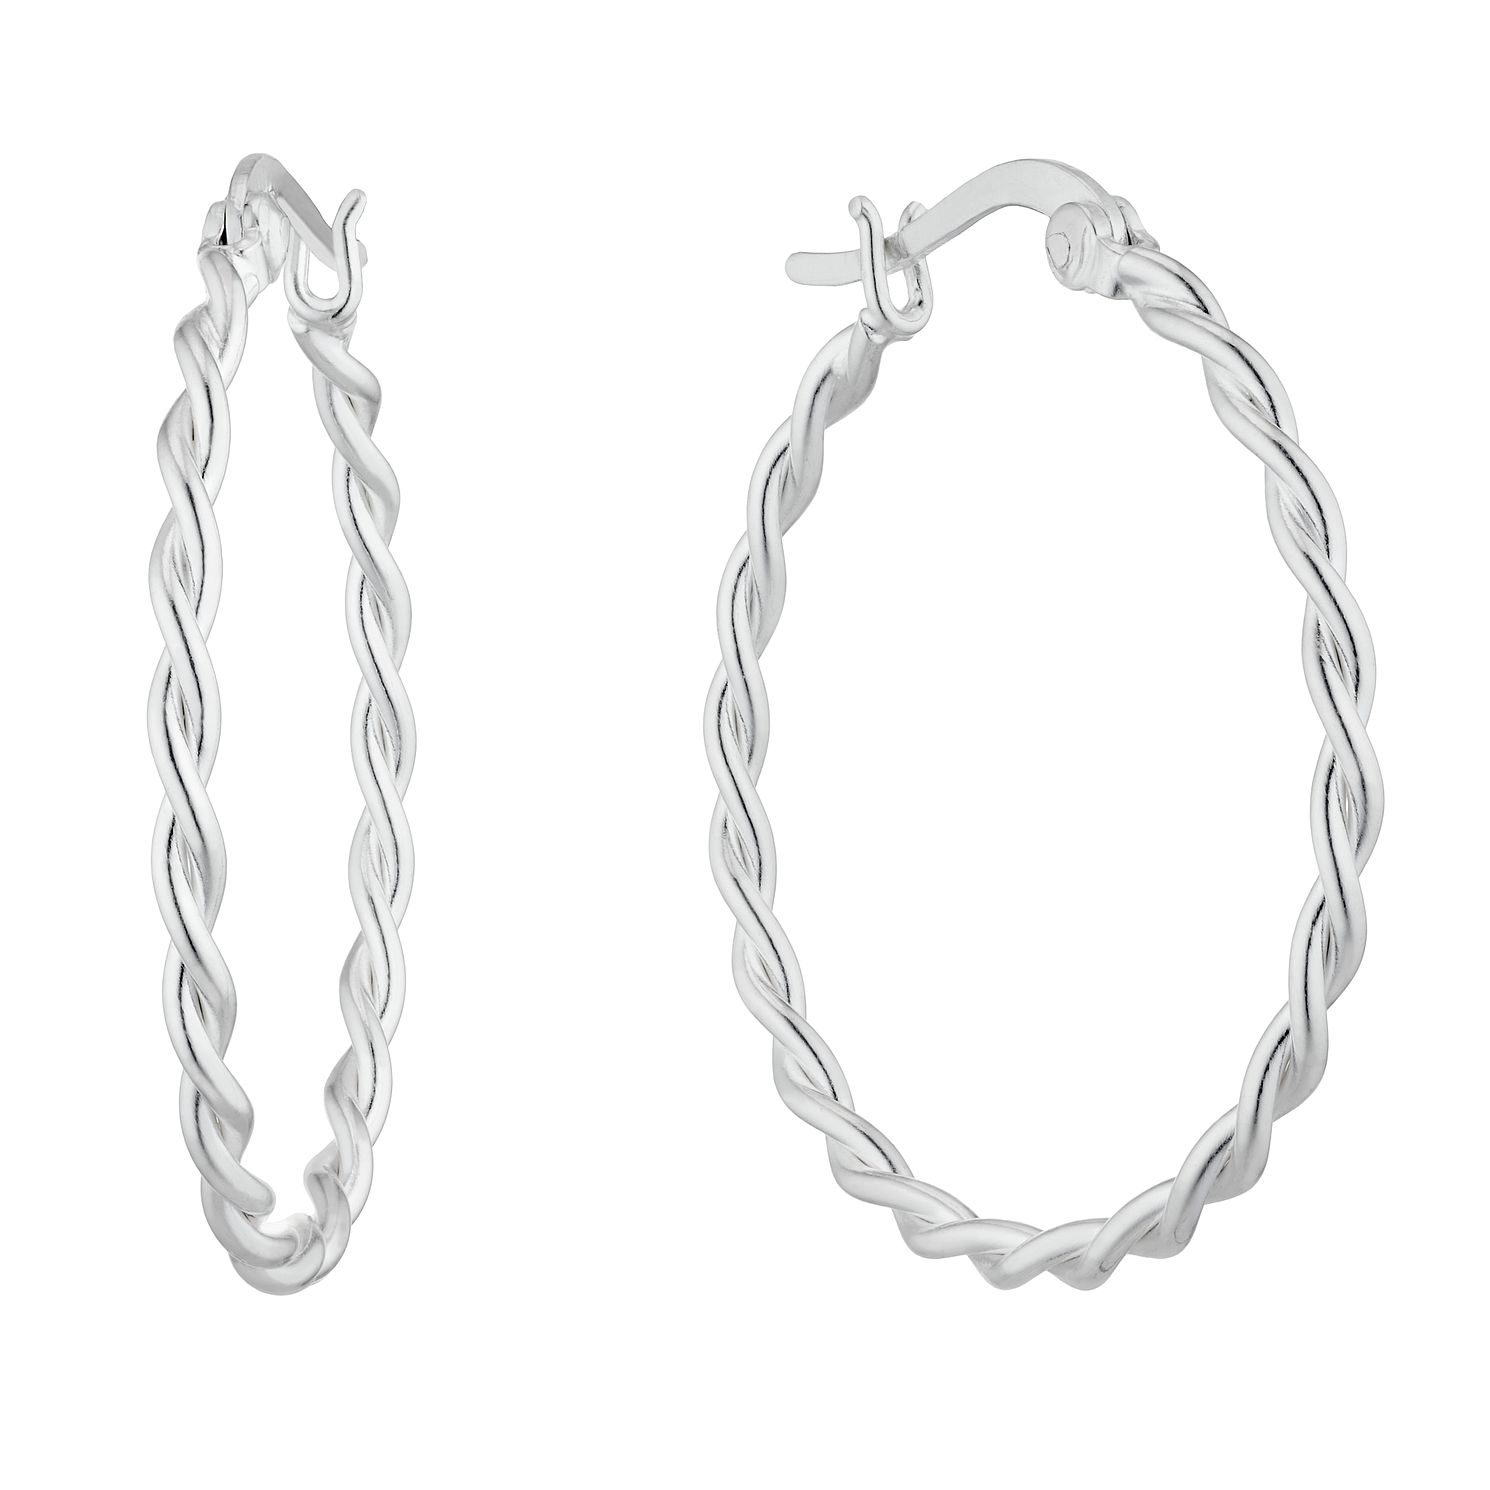 Sterling Silver Braided 27mm Hoop Earrings - Product number 4841972